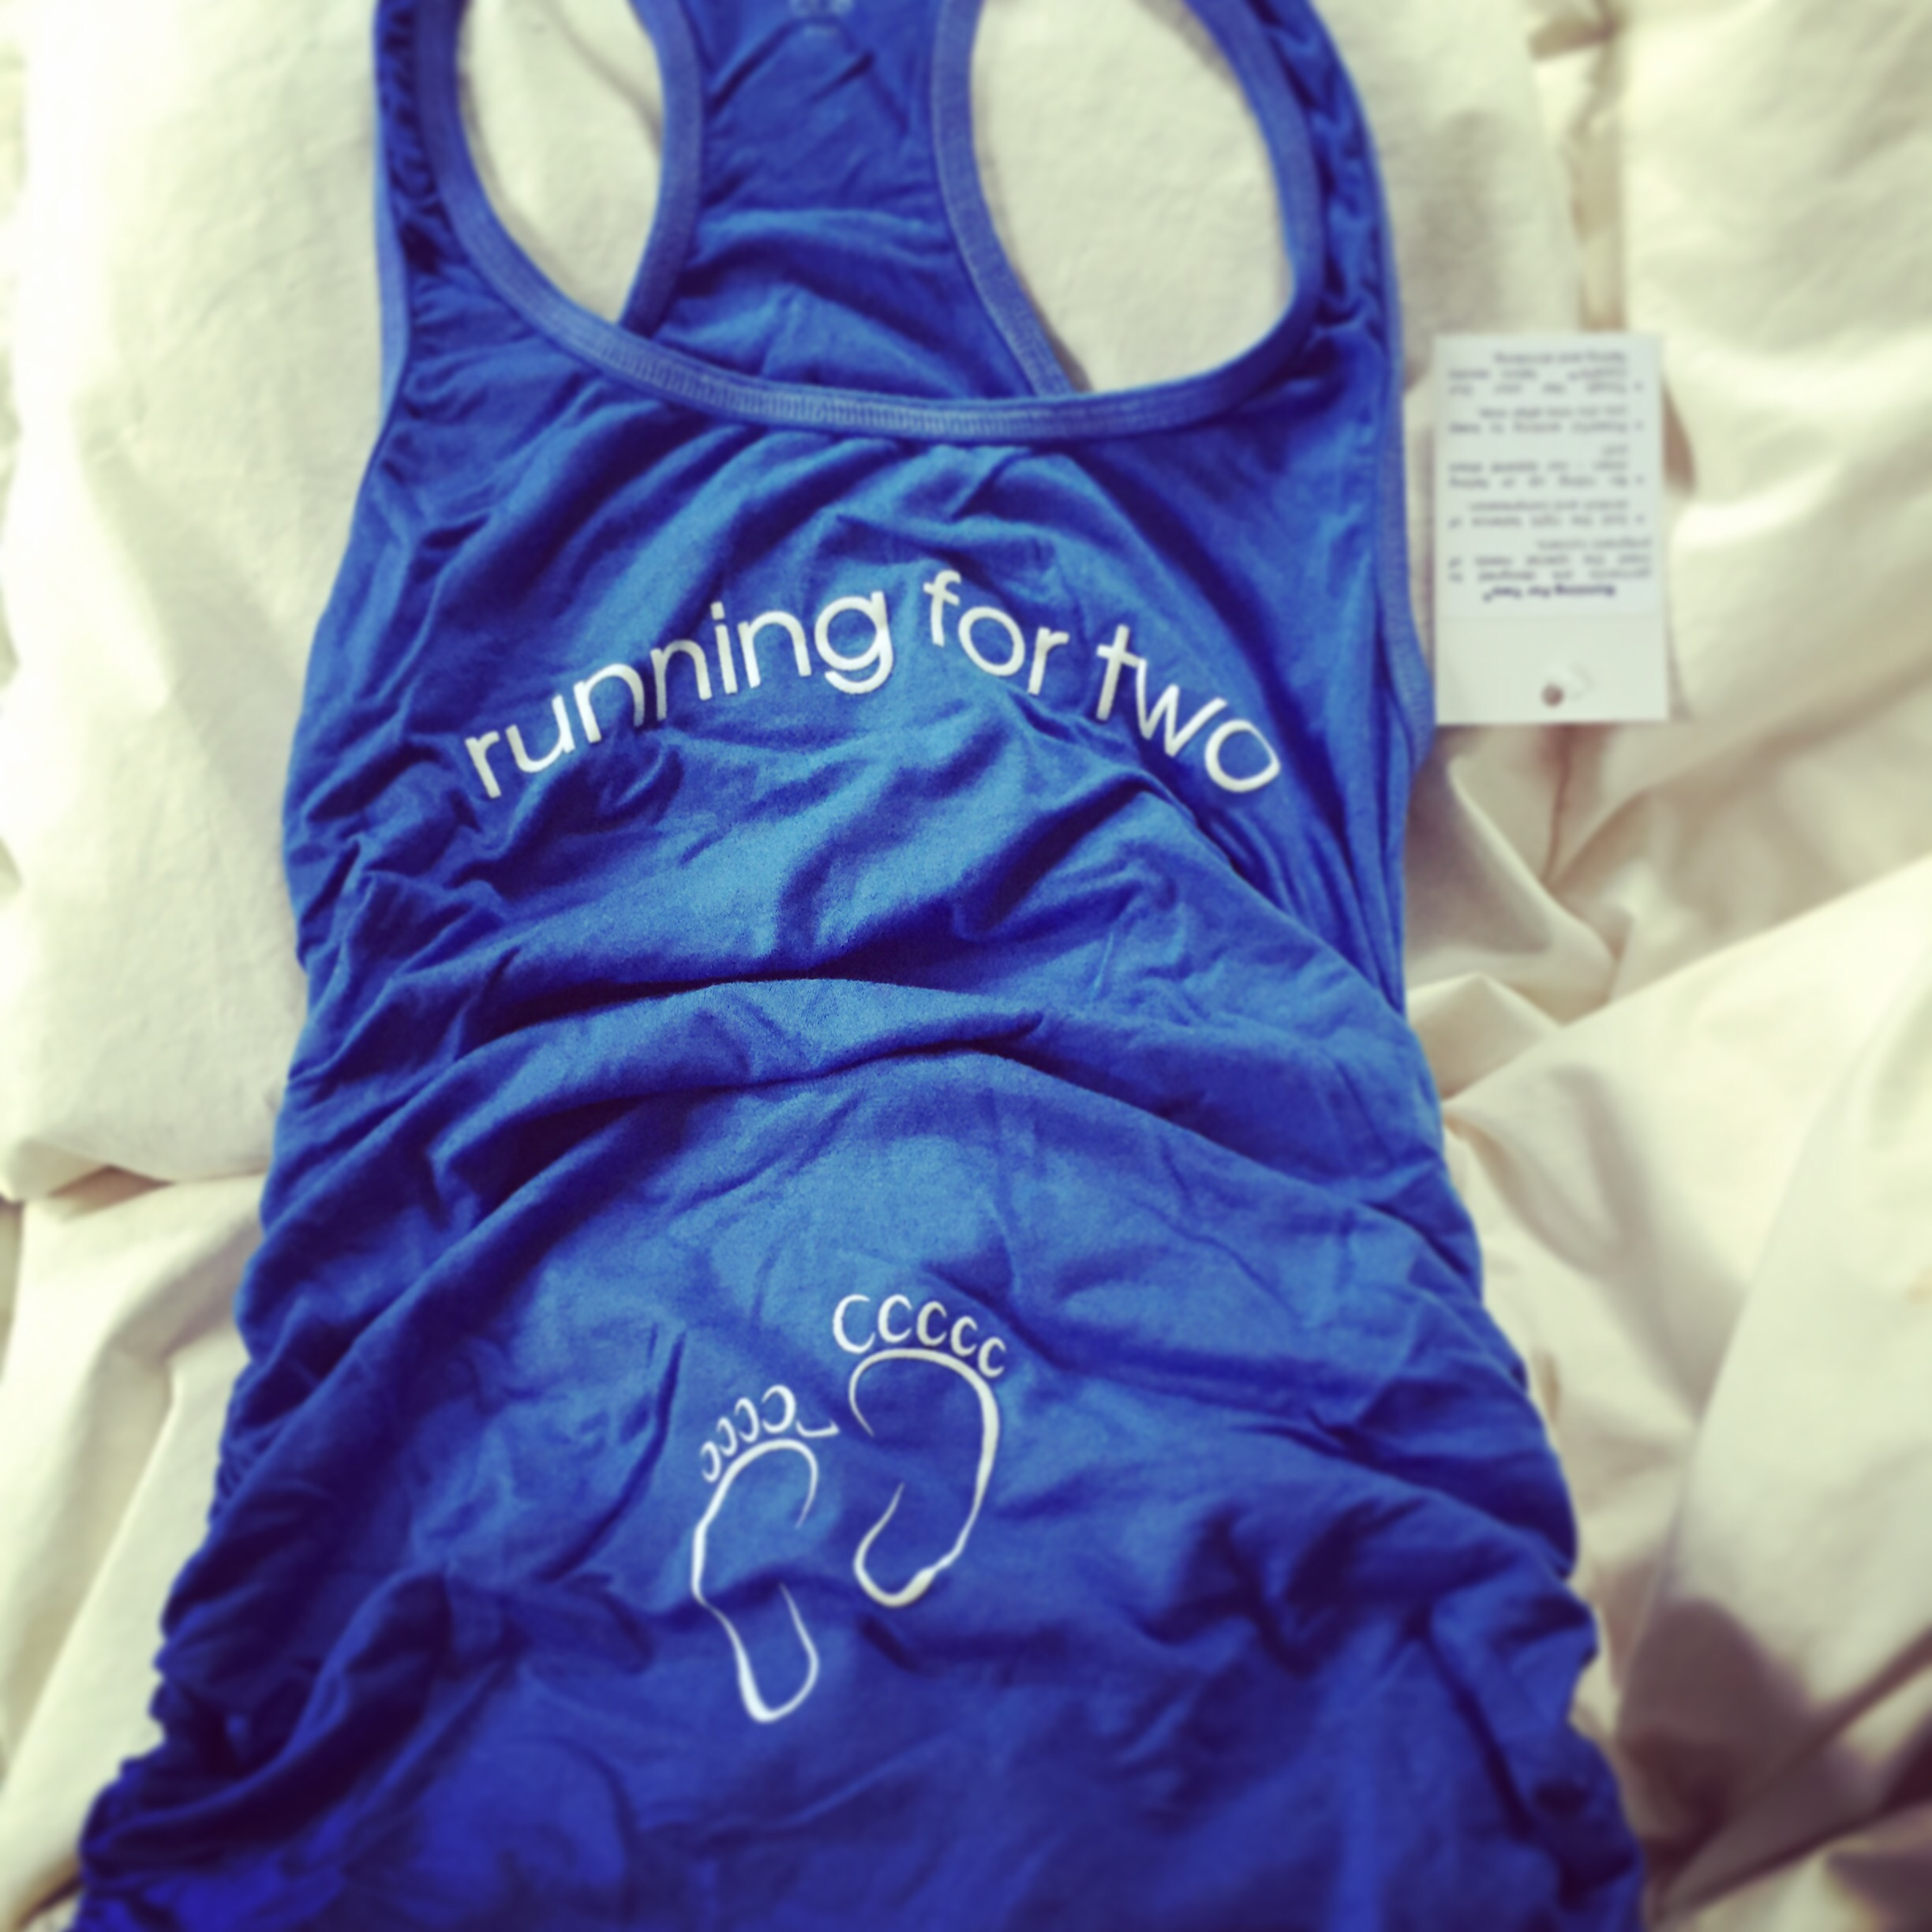 df49f9804f64f Working out during pregnancy has always been a priority for me. While  working out with a bump can come with its own challenges, perhaps the  biggest ...